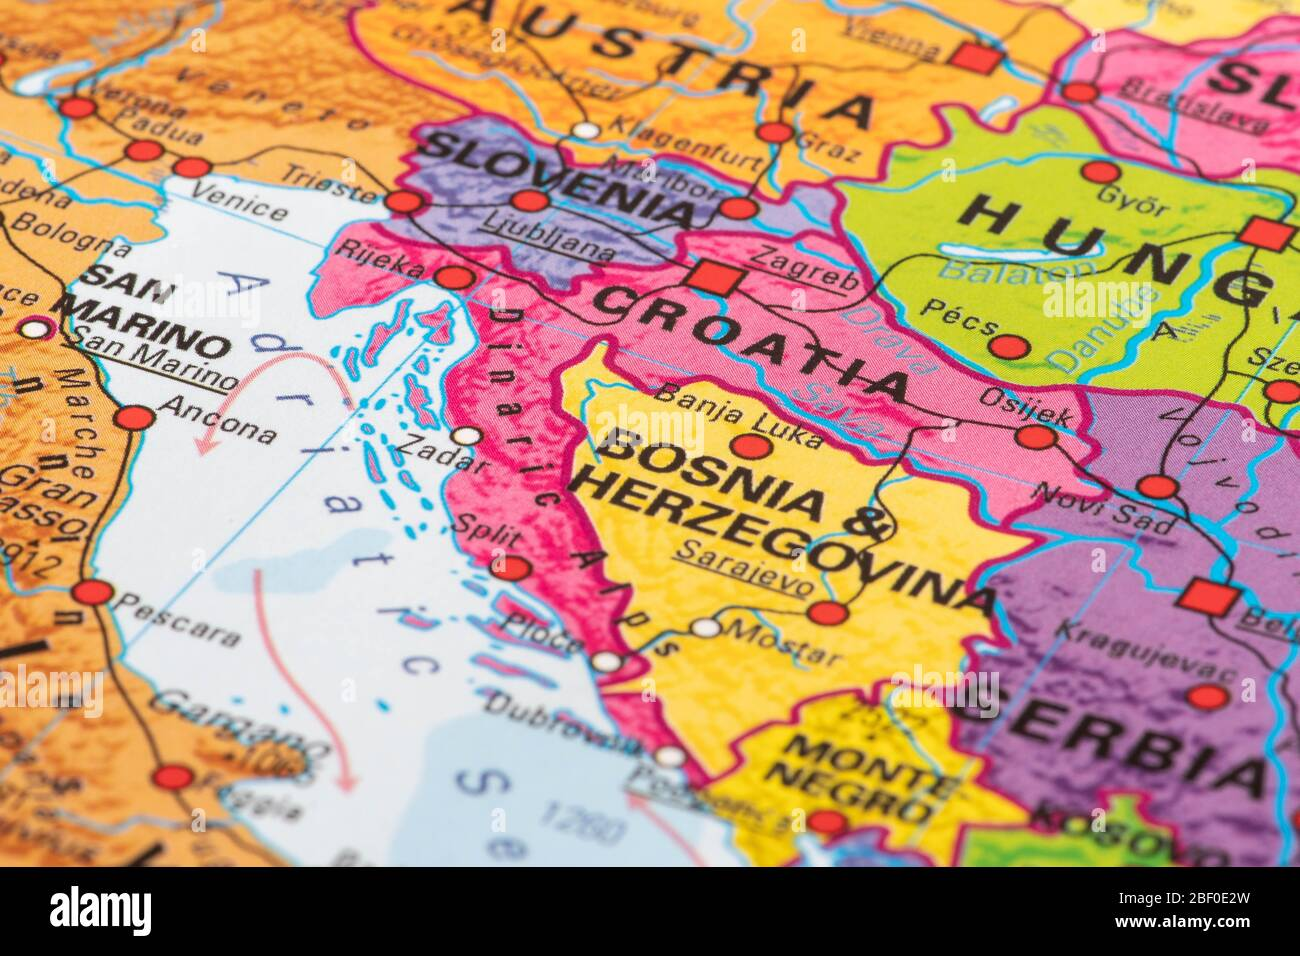 Picture of: Europe Map Of Croatia Stock Photo Alamy